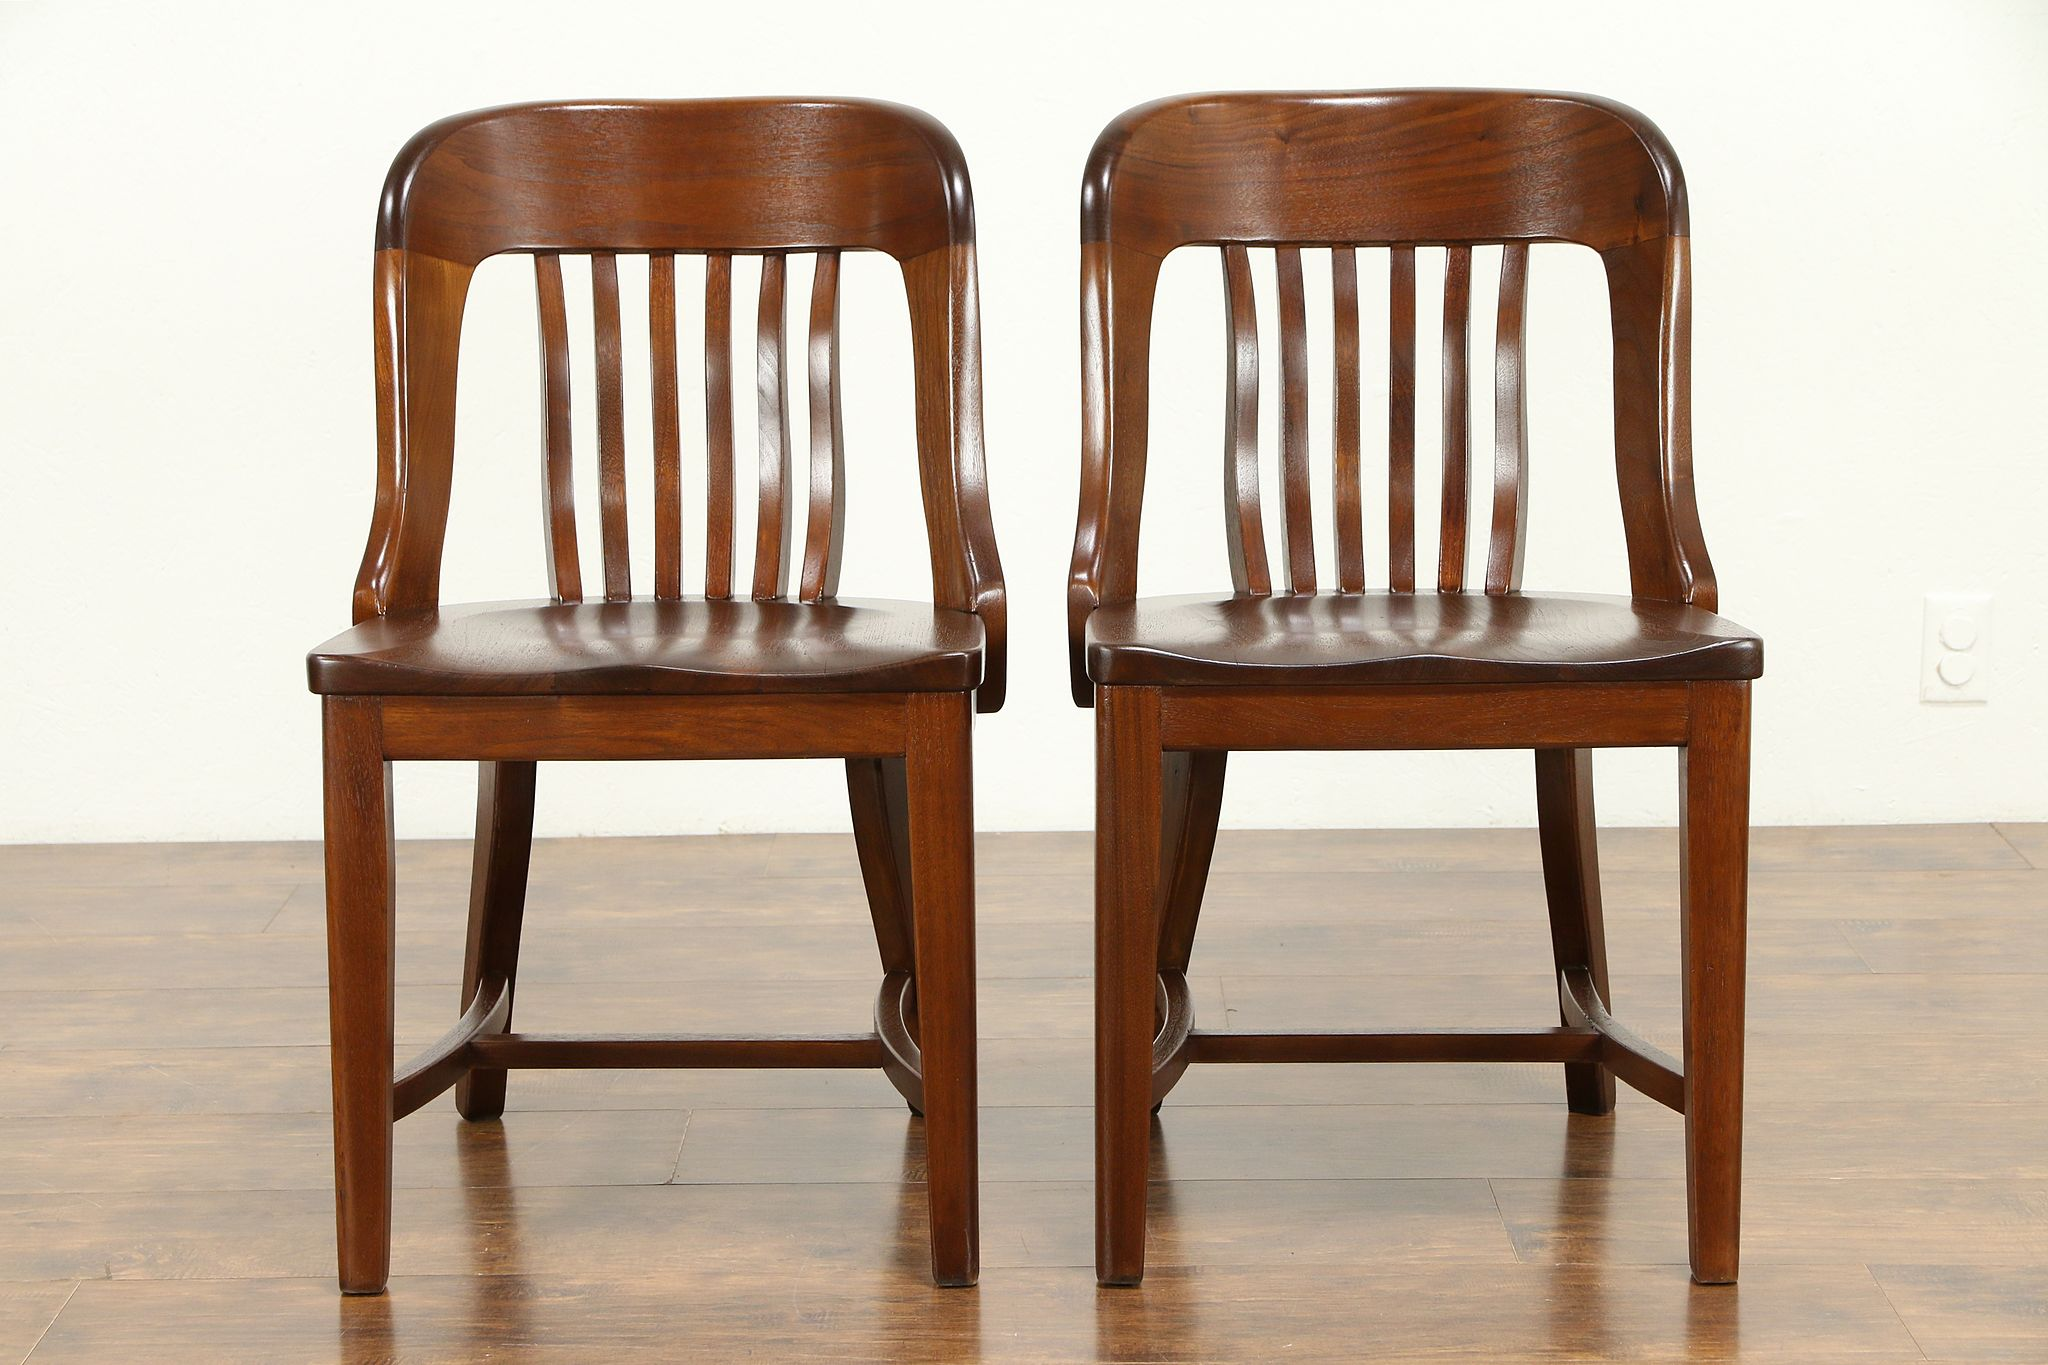 Astounding Pair Of Walnut Antique Banker Desk Library Or Office Chairs 31115 Lamtechconsult Wood Chair Design Ideas Lamtechconsultcom